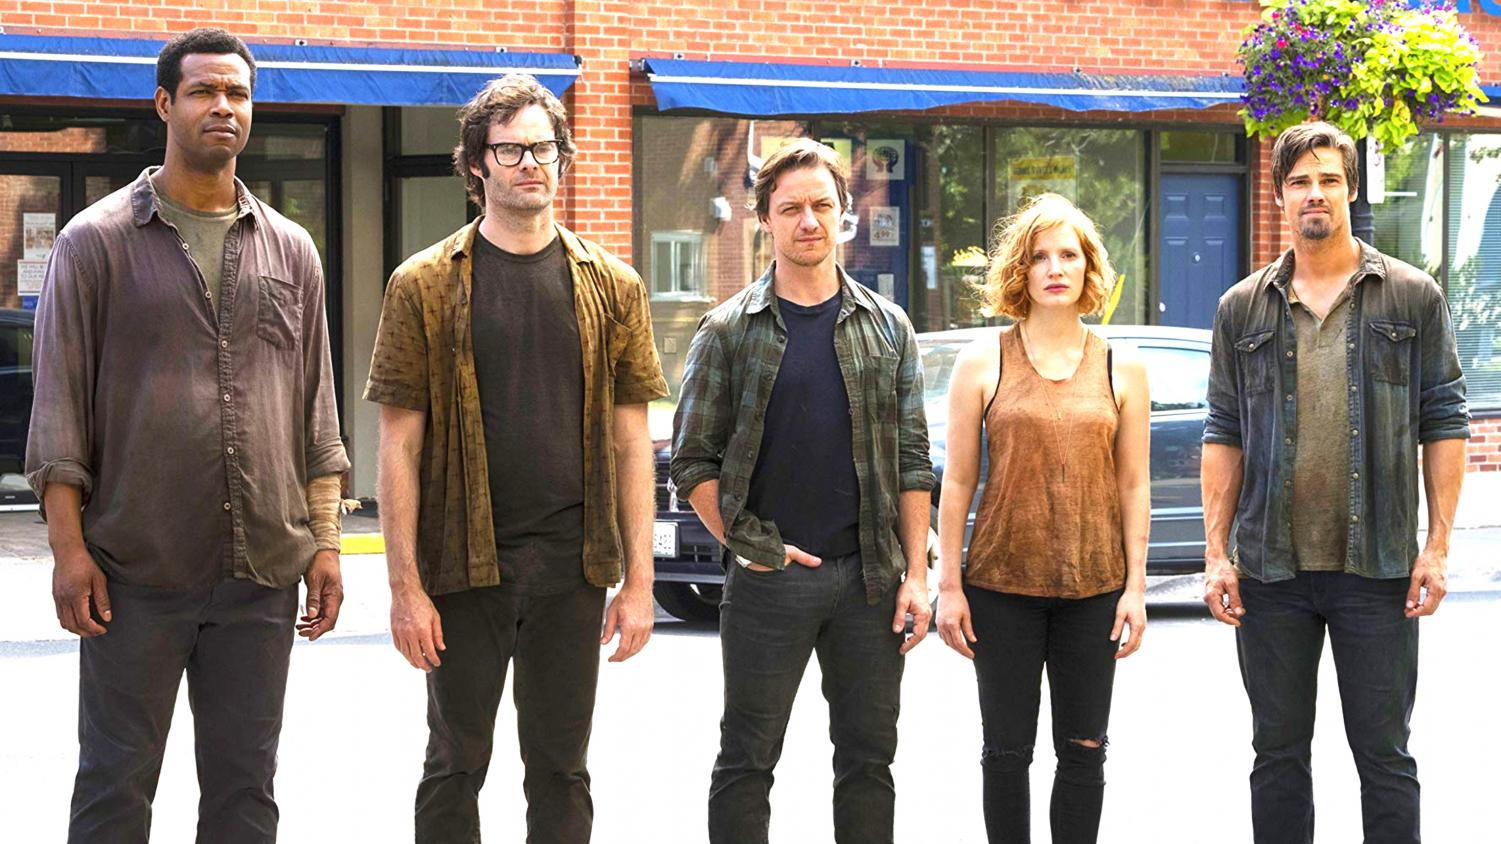 """From left, Isaiah Mustafa, Bill Hader, James McAvoy, Jessica Chastain, and Jay Ryan star in """"It Chapter Two."""""""